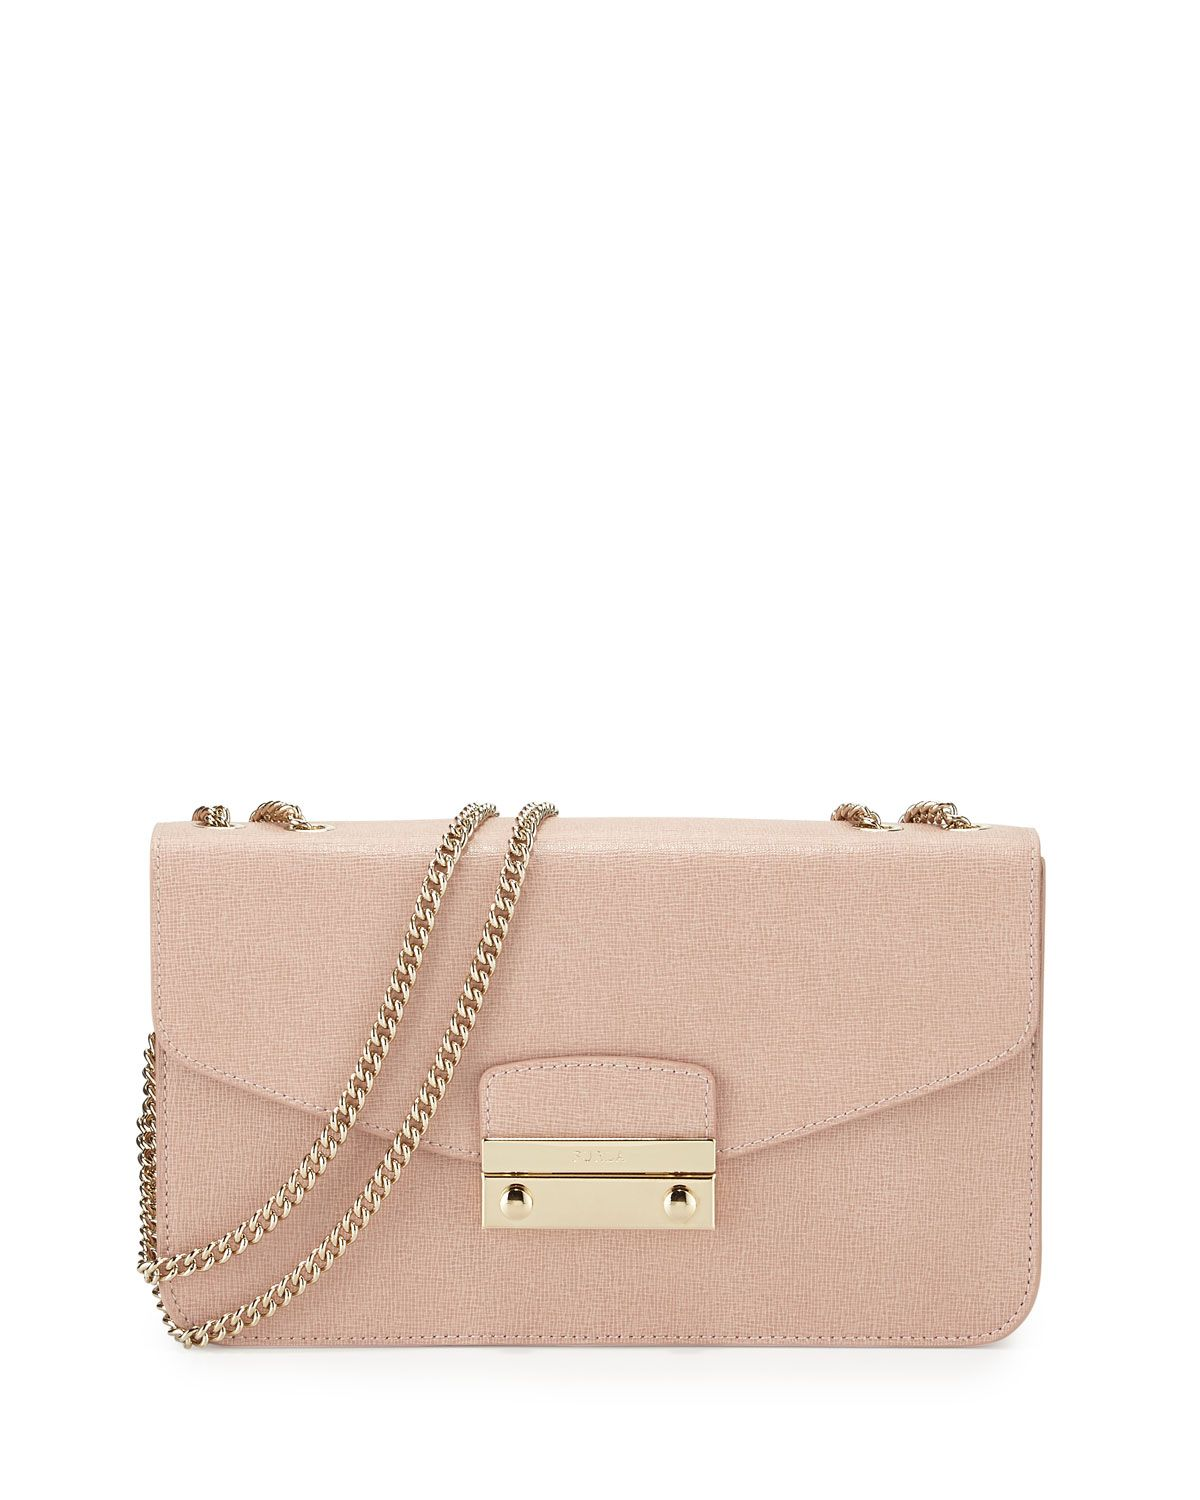 74580db3afe1 Julia Small Leather Pochette Bag Moonstone